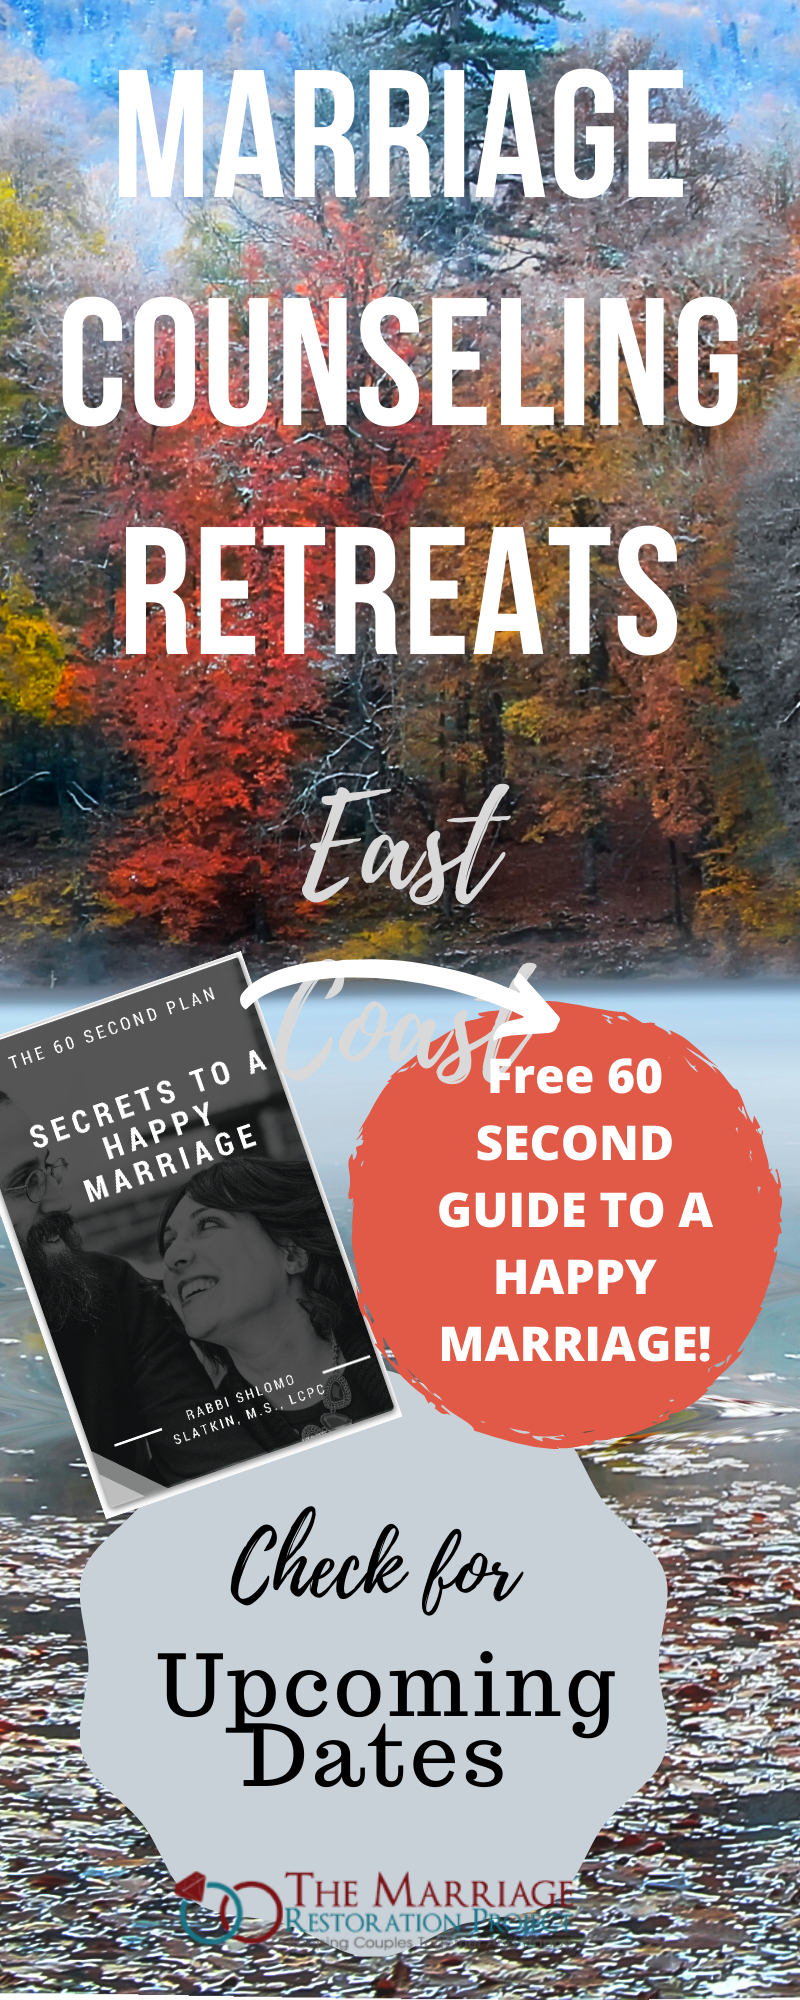 Imago Weekend Marriage Retreat In 2020 Marriage Counseling Marriage Retreats Couples Therapy